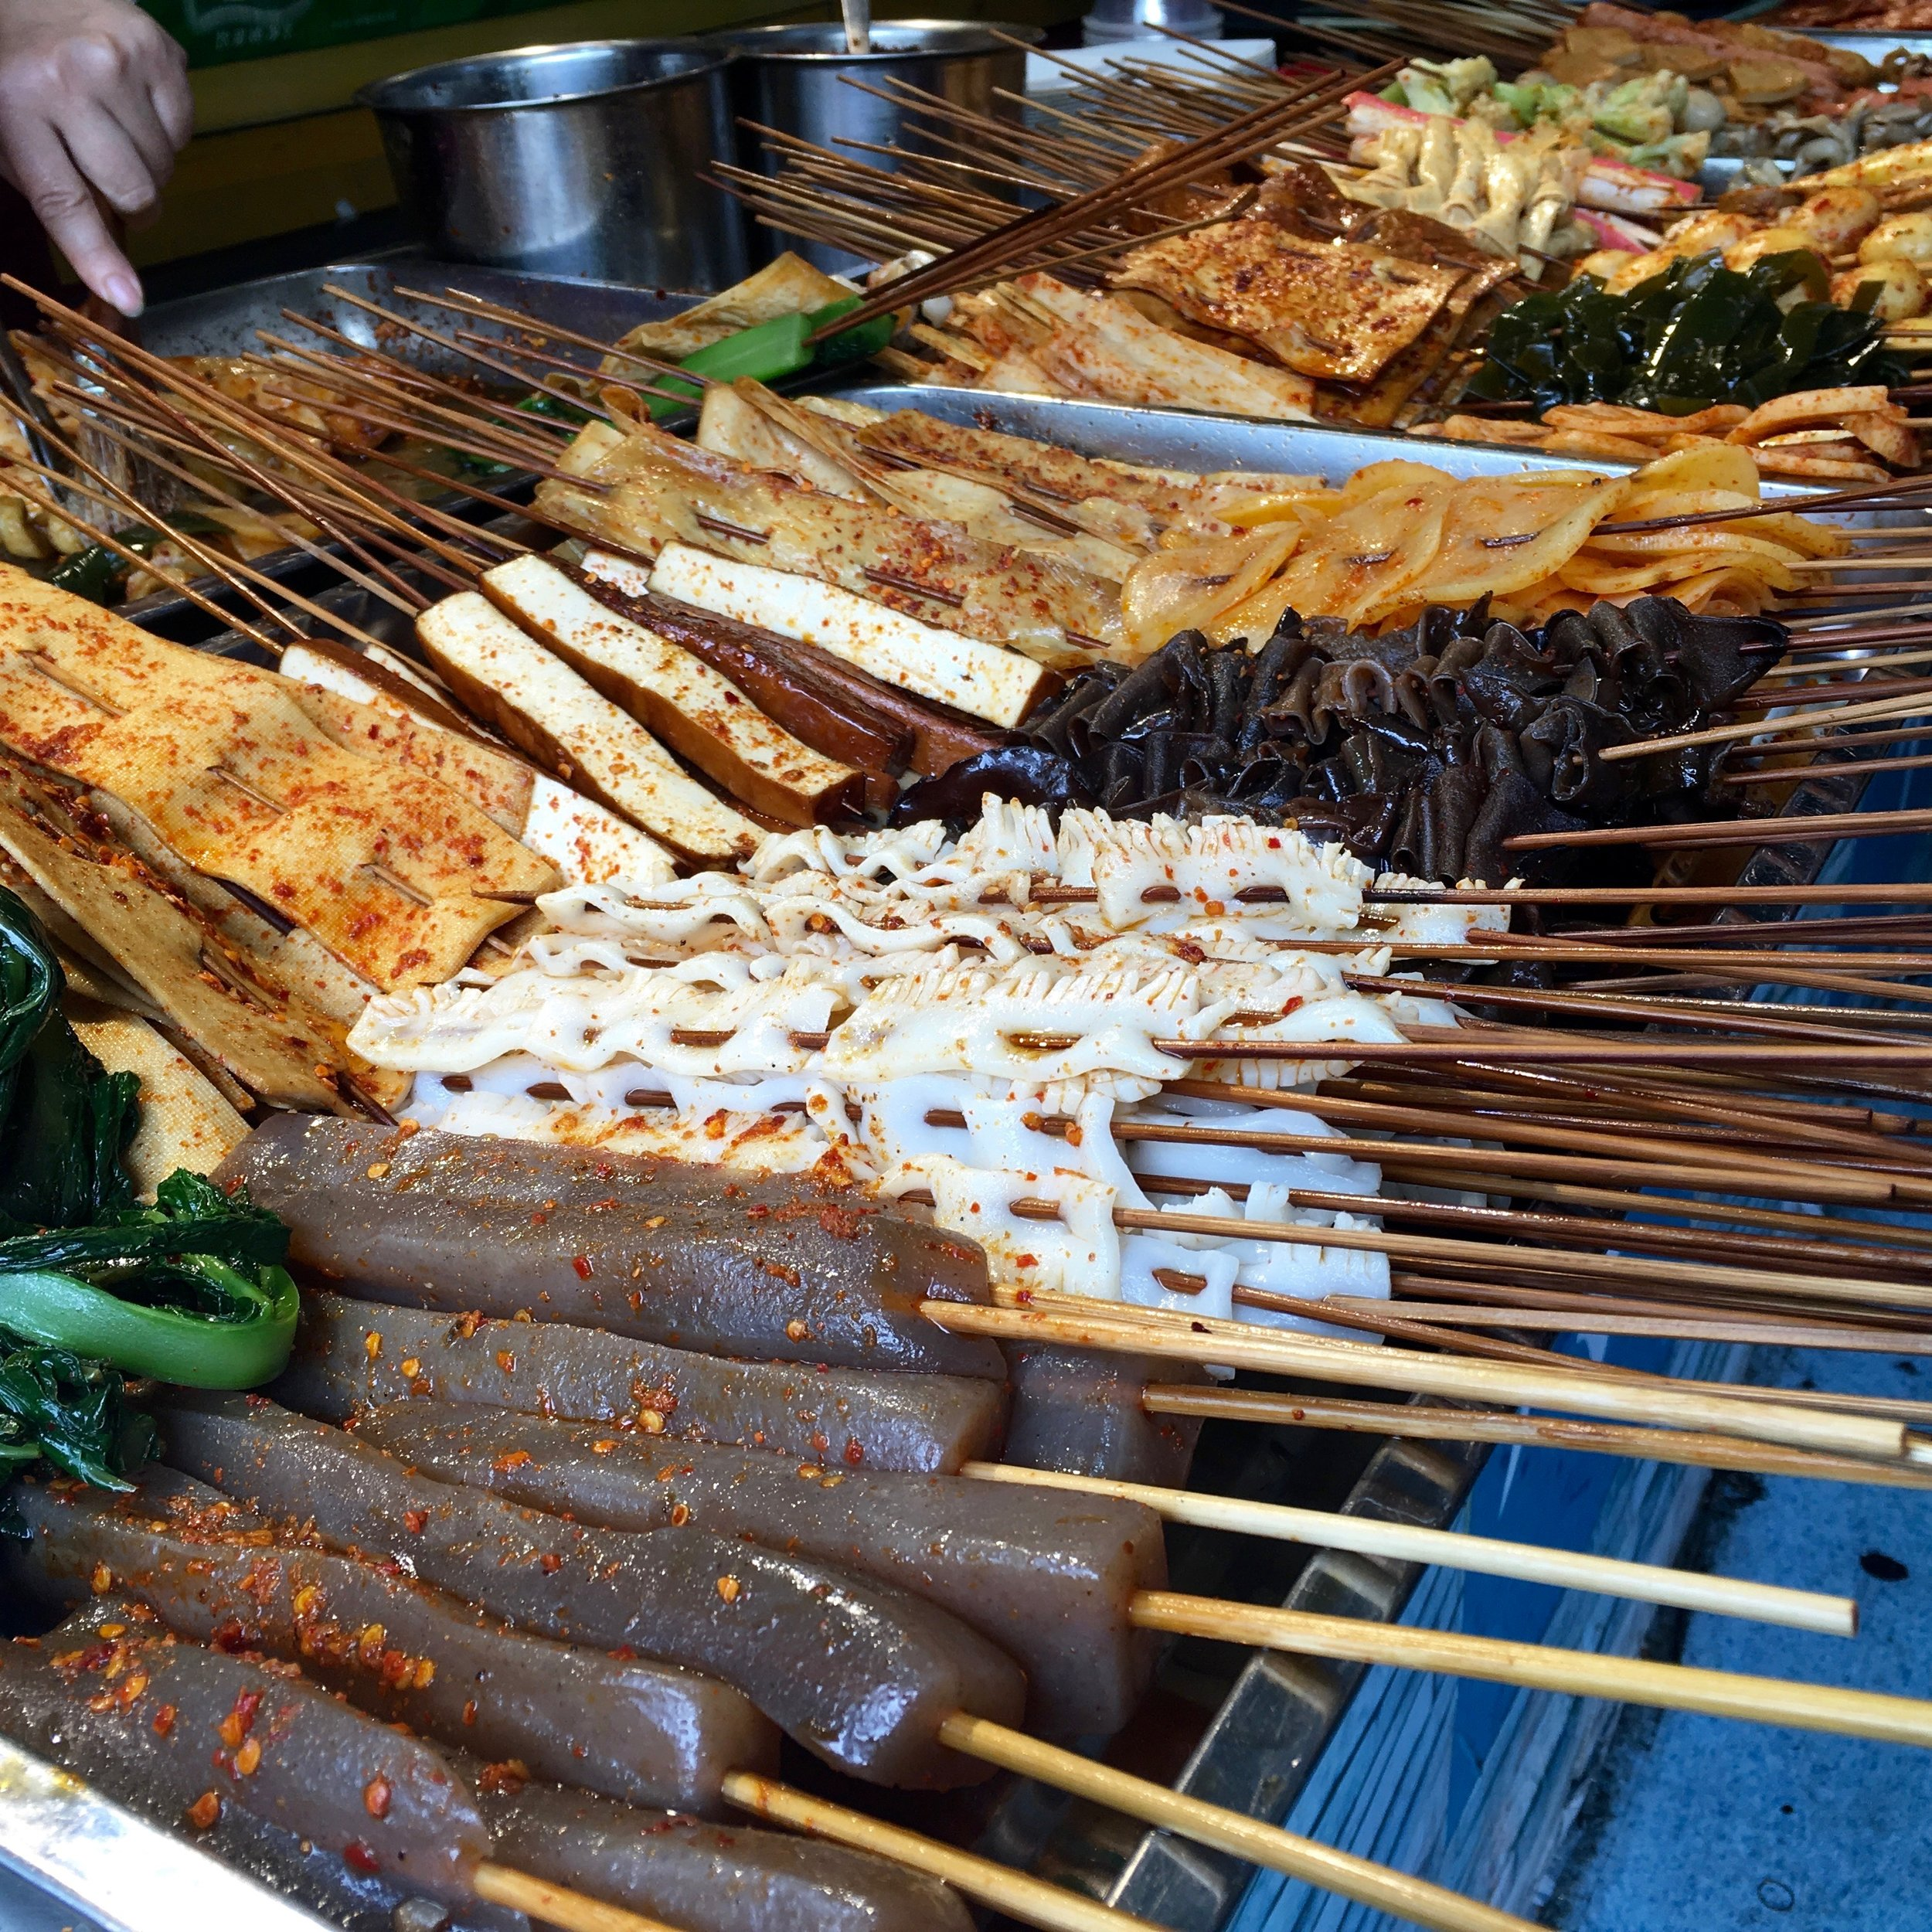 More skewered mysteries ready for the flame